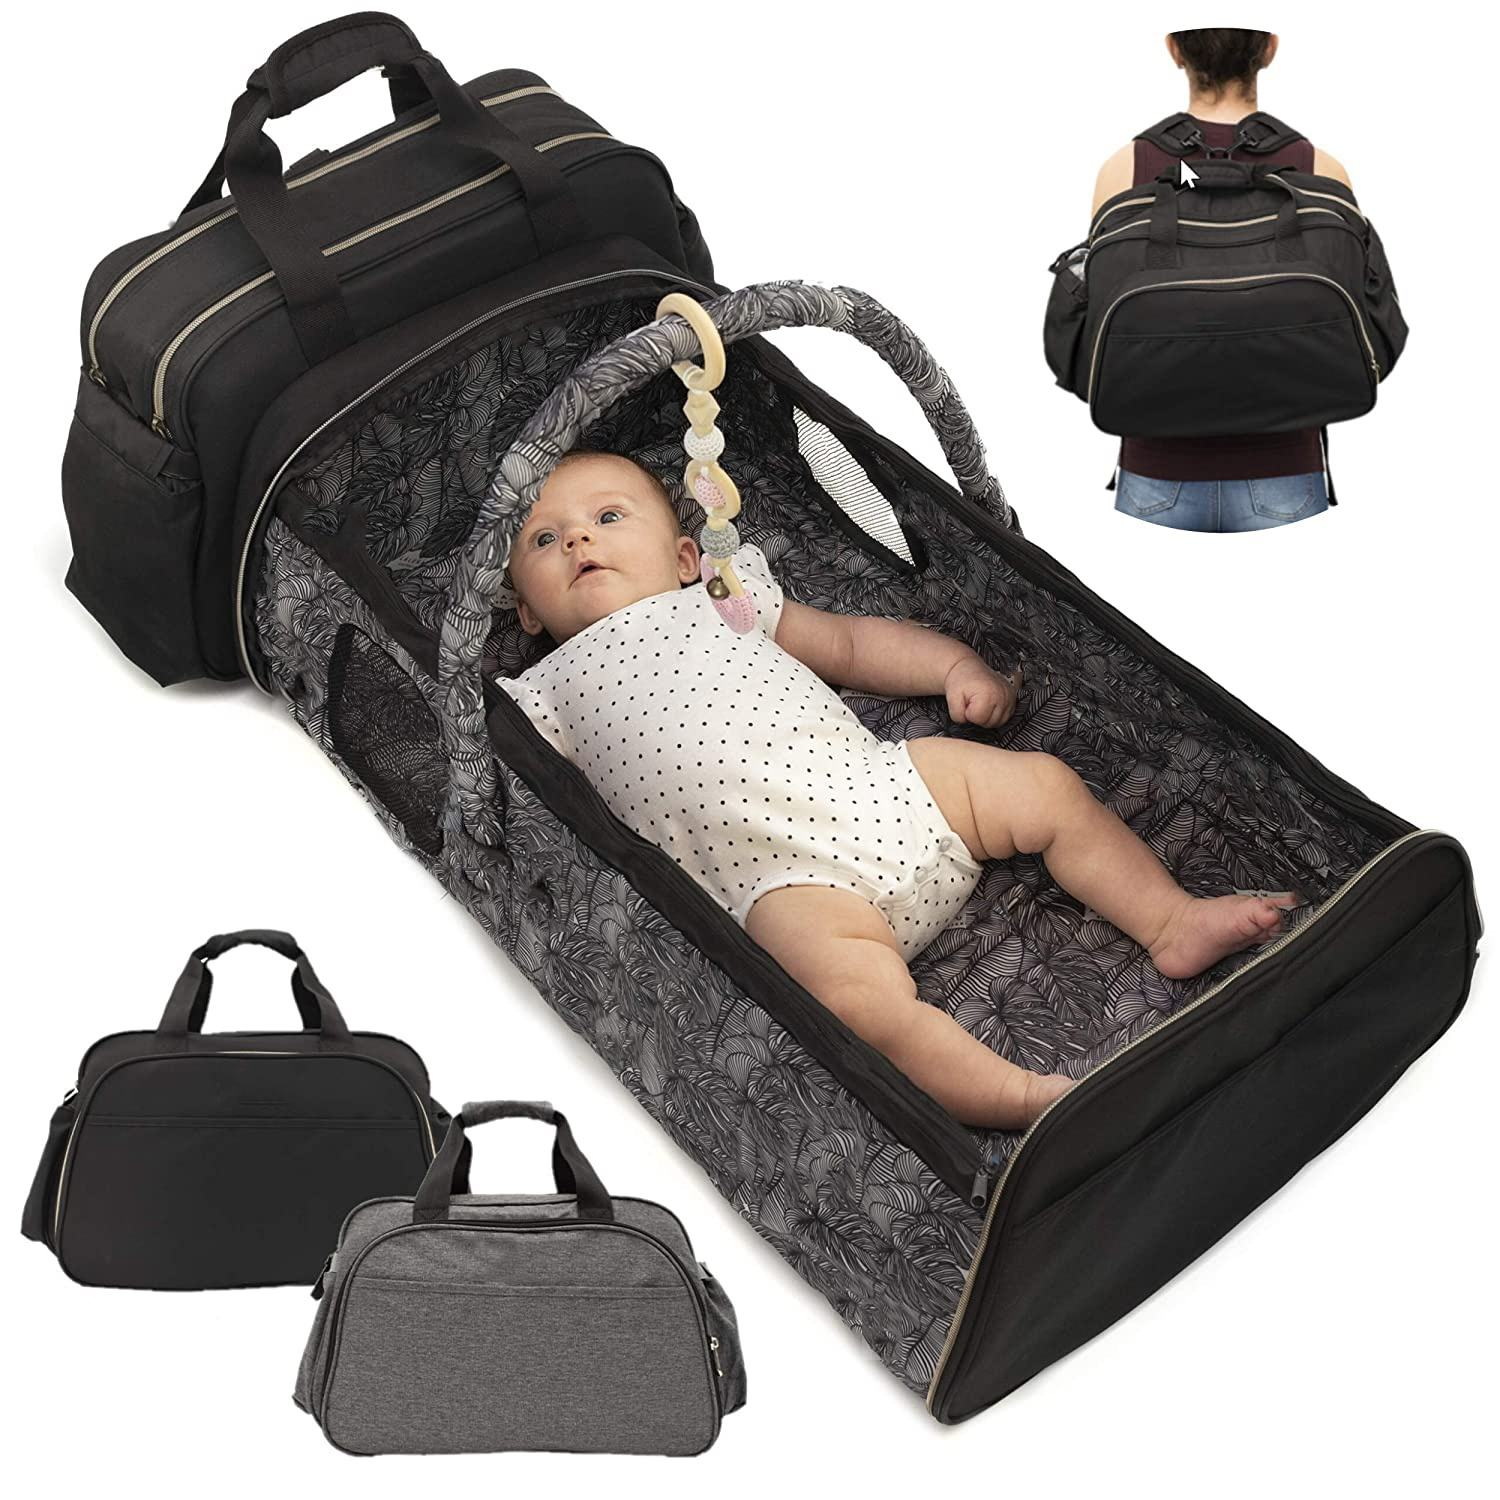 Portable Bassinet for Baby Travel - Travel Bassinets for Babies Large 3 in 1 Diaper Bag Backpack Changing Station Wear 5 Ways